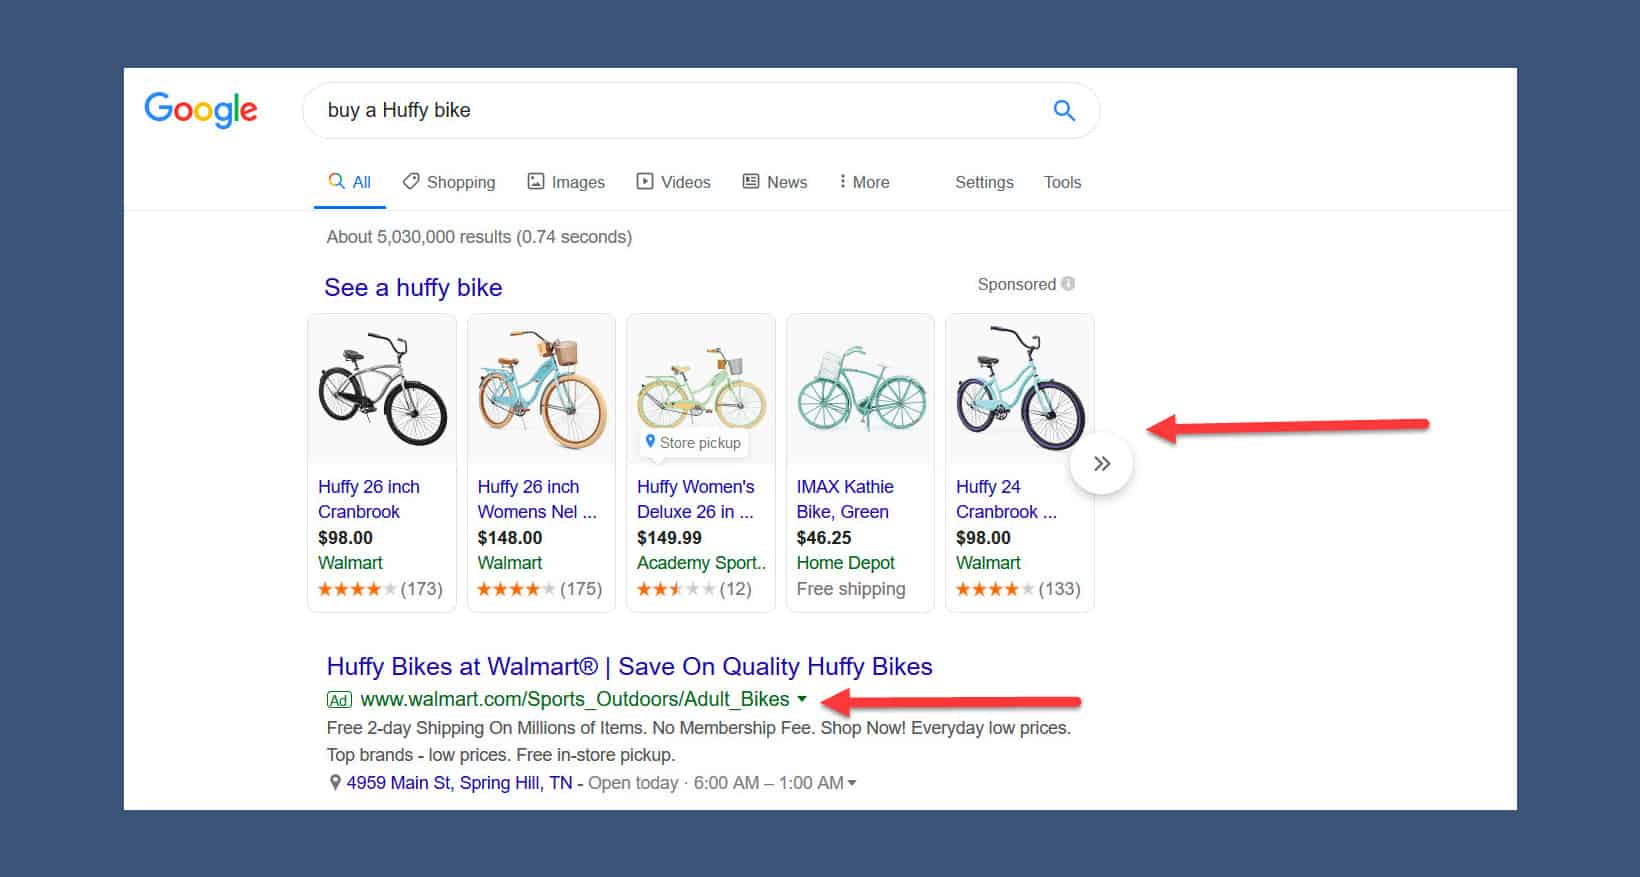 Google Ads uses the PPC format.